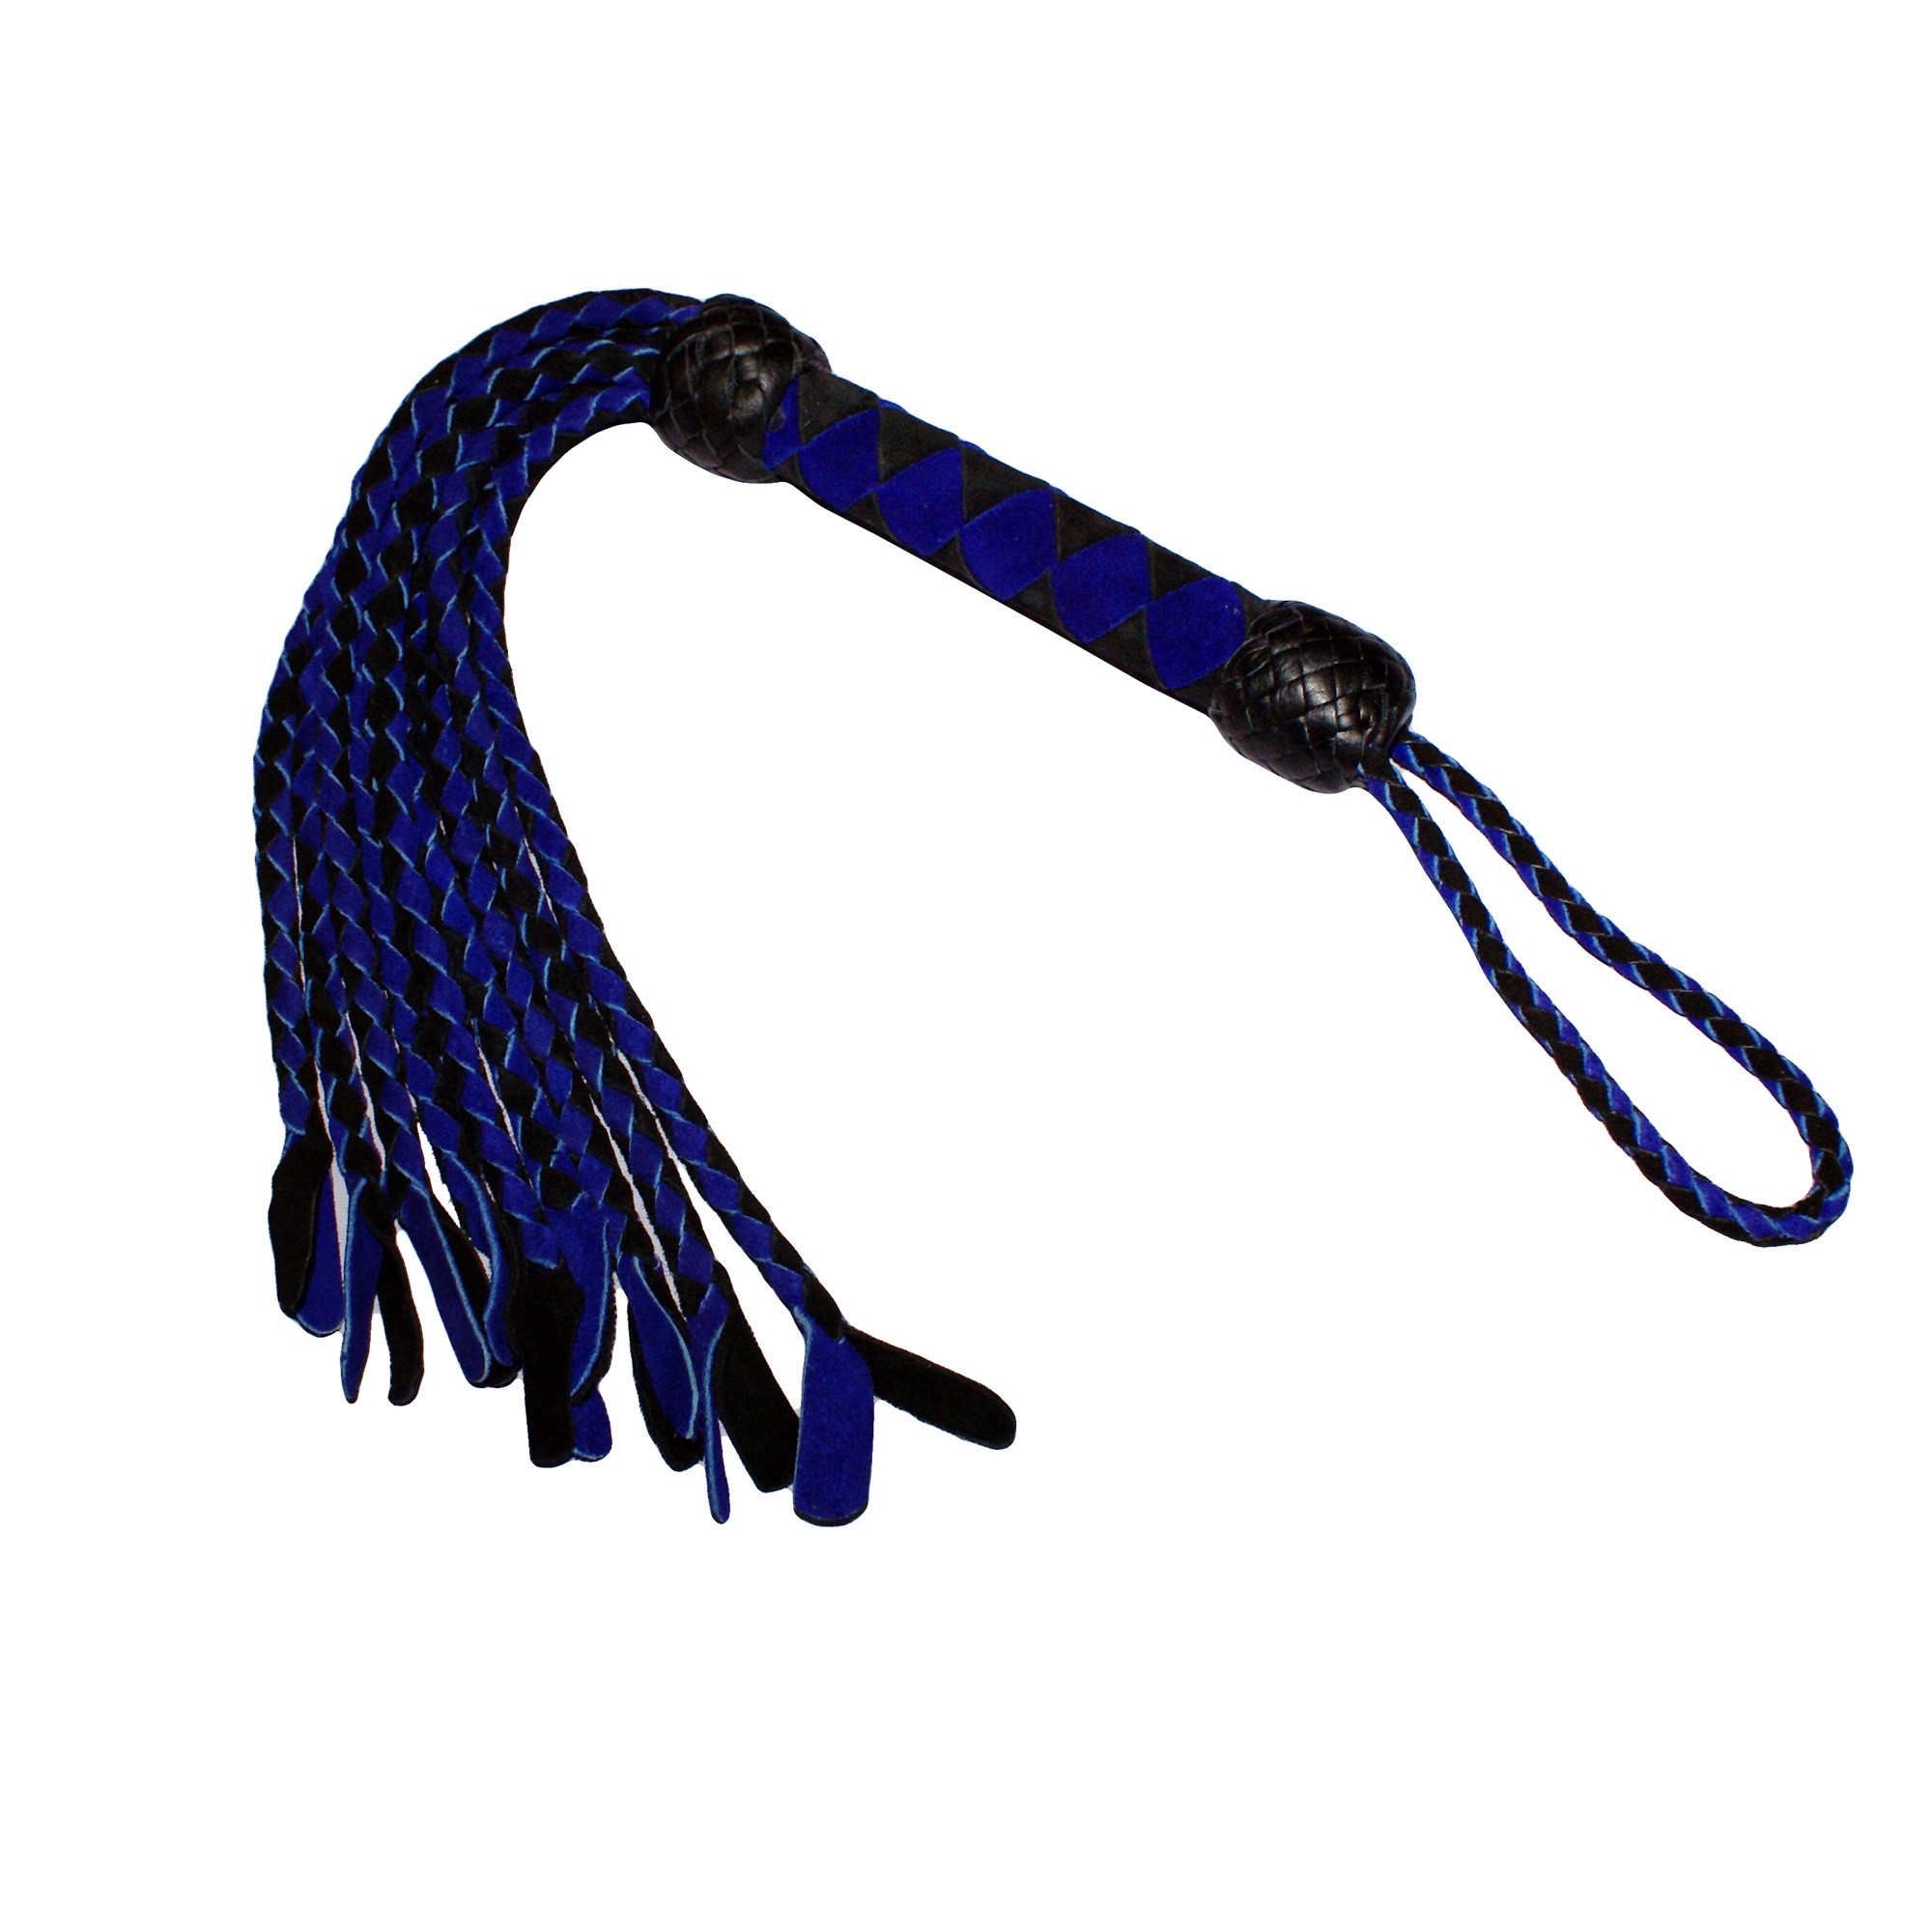 HMB-526A LEATHER FLOGGER BULLWHIP MINI BONDAGE WHIPS BDSM SPANKING BRAIDS GRIP